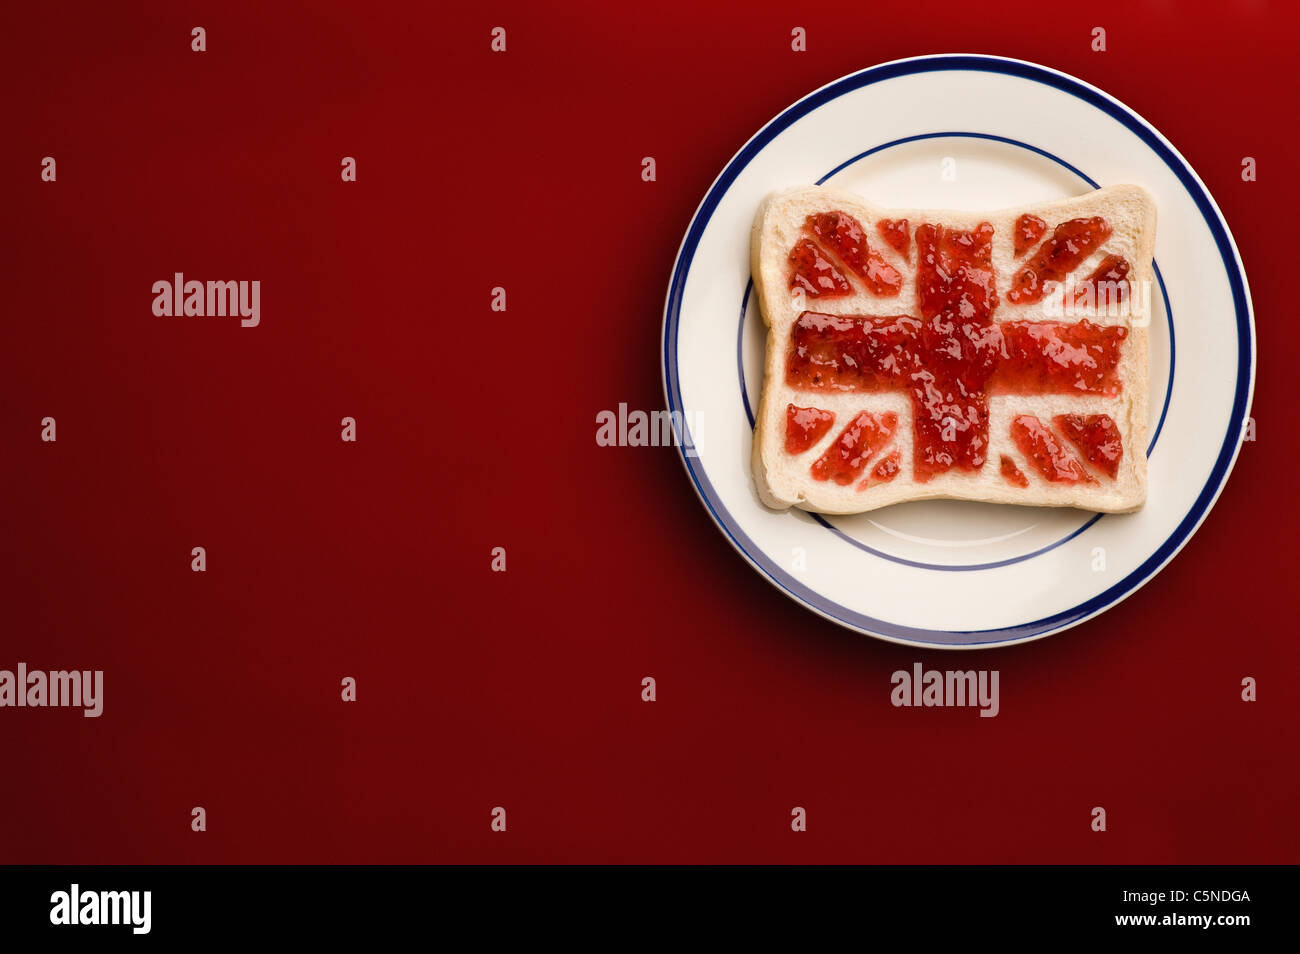 A slice of bread with a union jack flag of strawberry jam Stock Photo